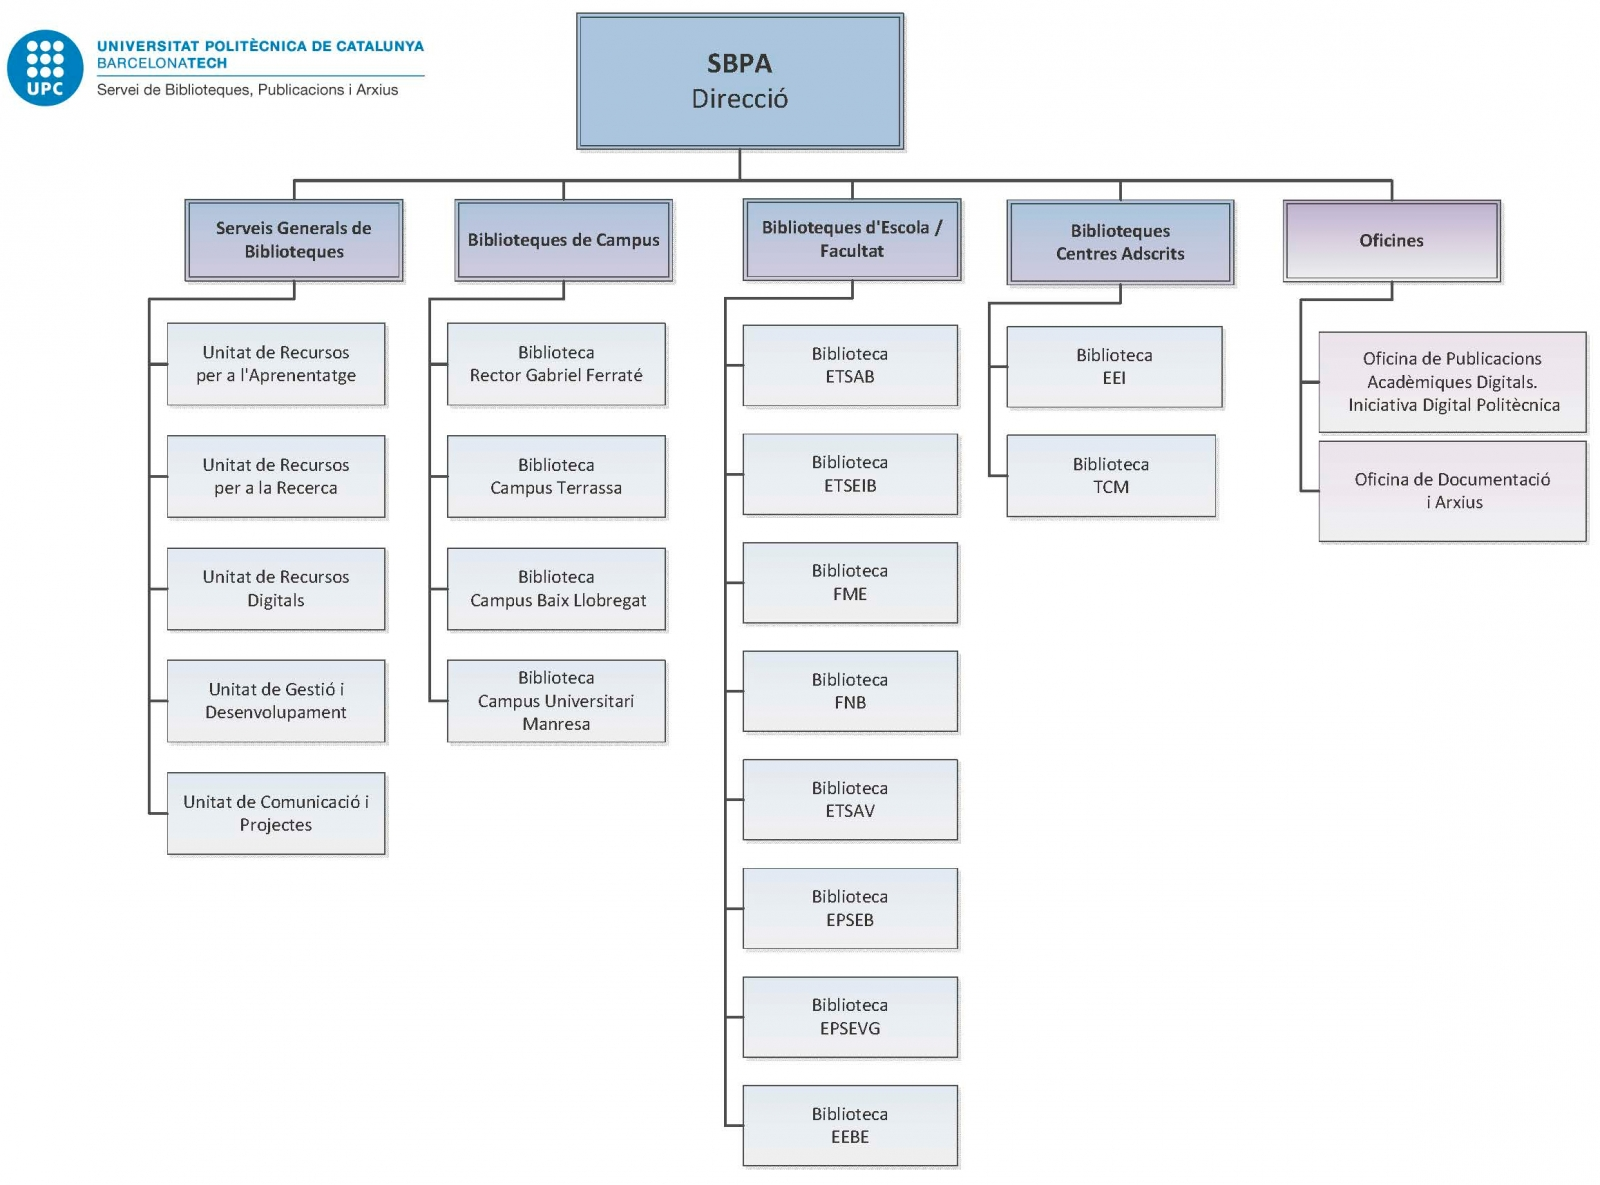 Organization chart of the SBPA - 2018